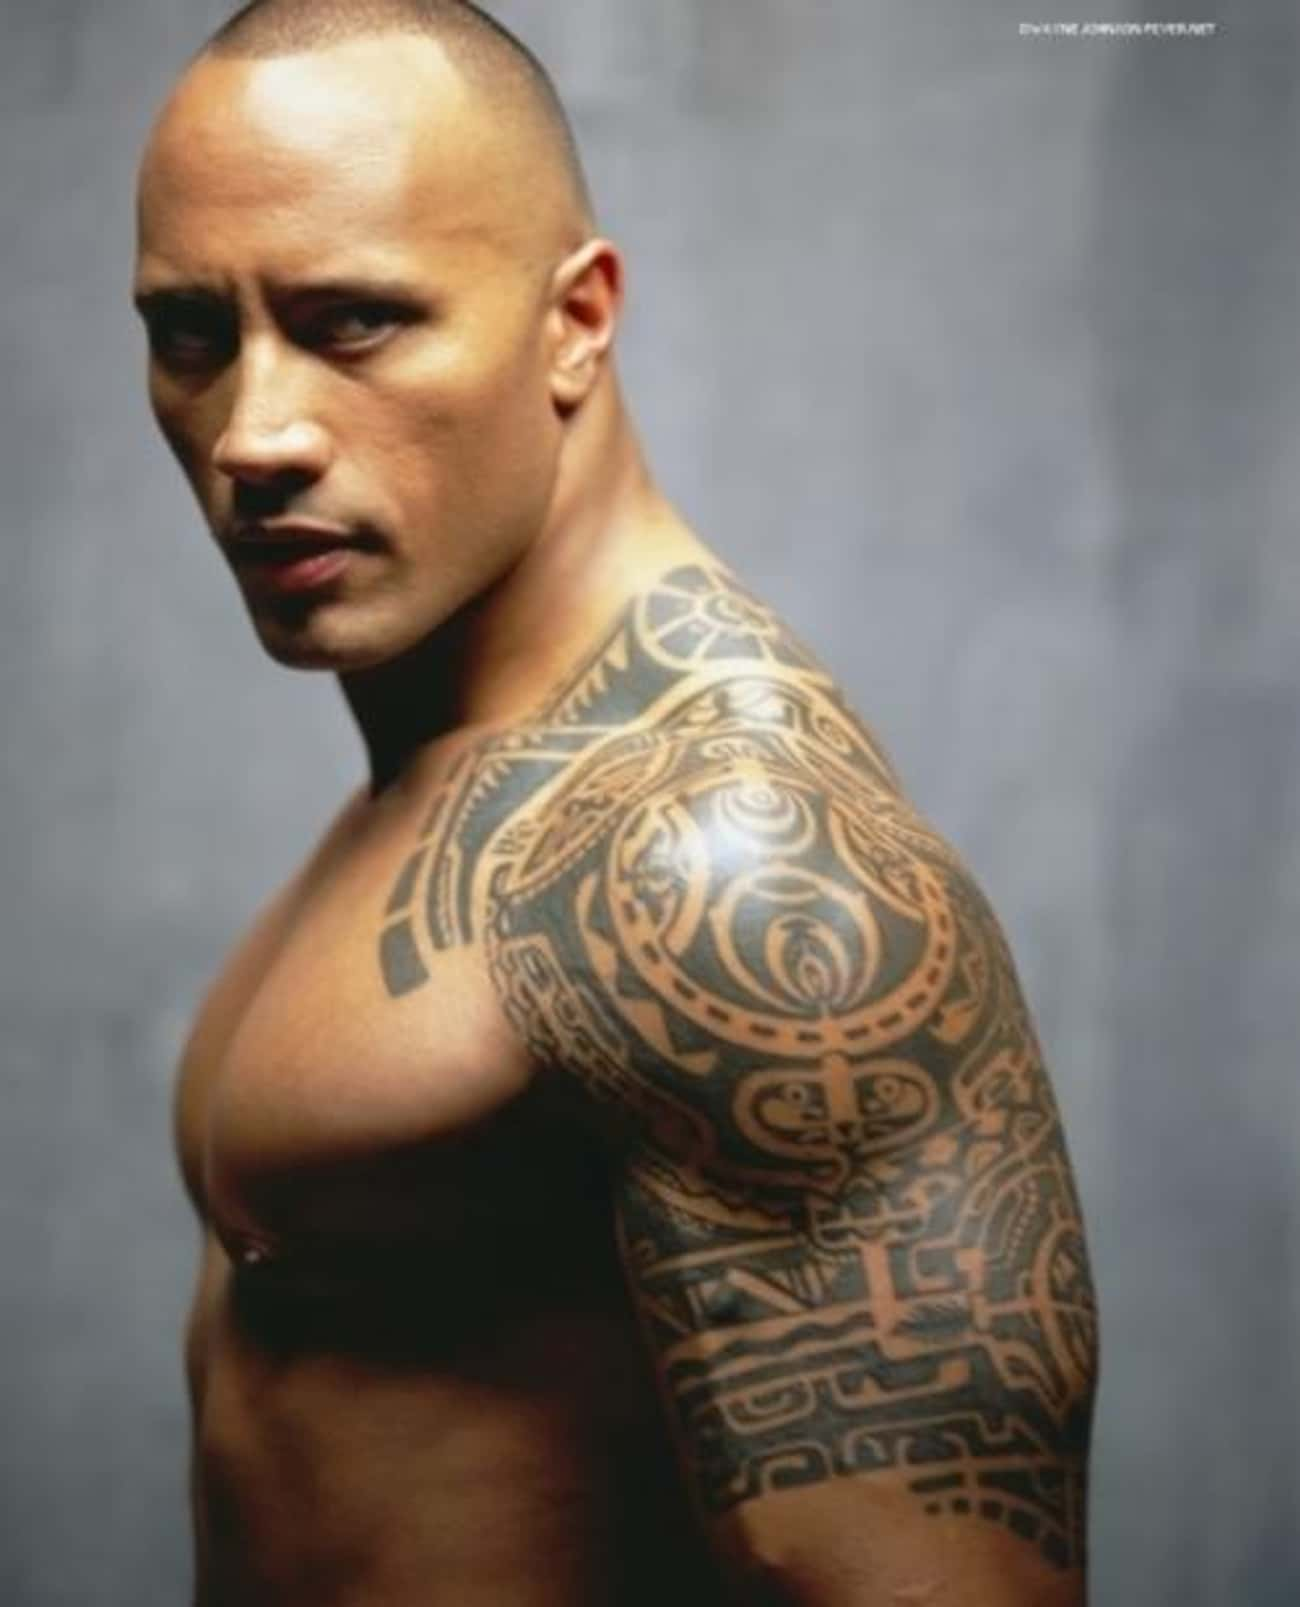 Eyes is listed (or ranked) 1 on the list The Rock Tattoos